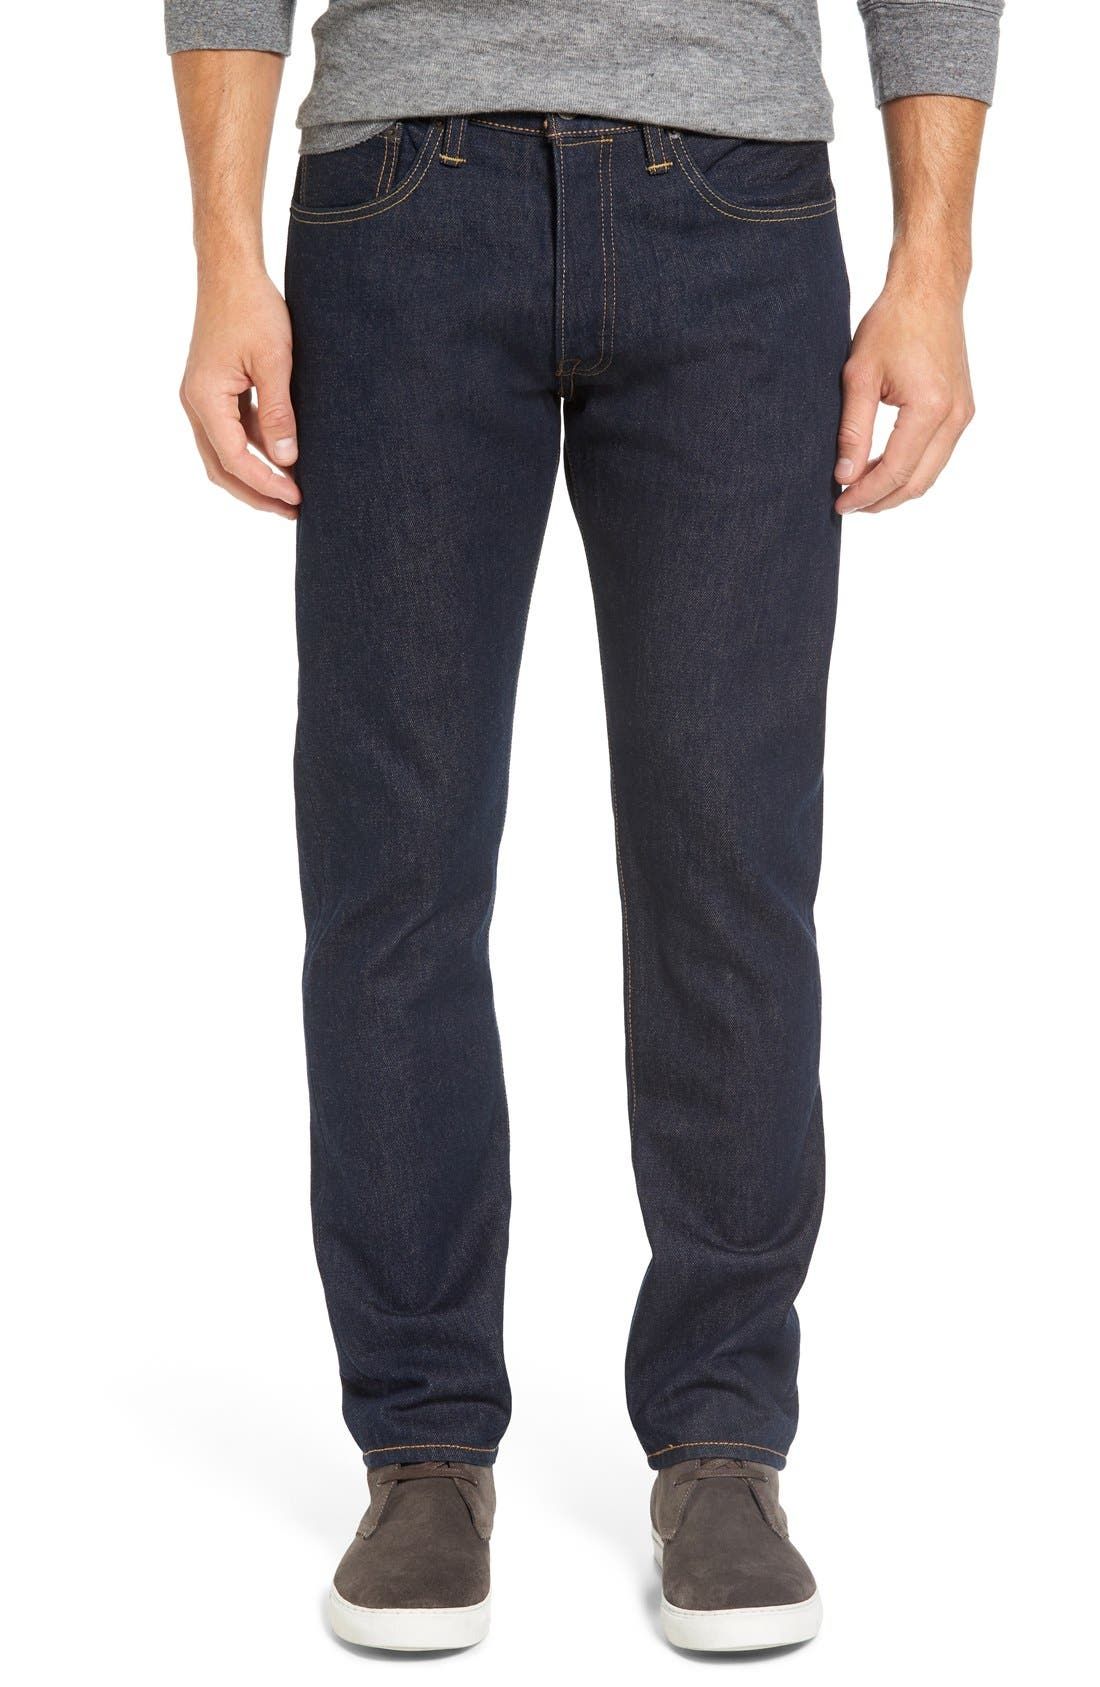 Main Image - Levi's® 501® CT Slim Fit Jeans (Noten) (Regular & Tall)